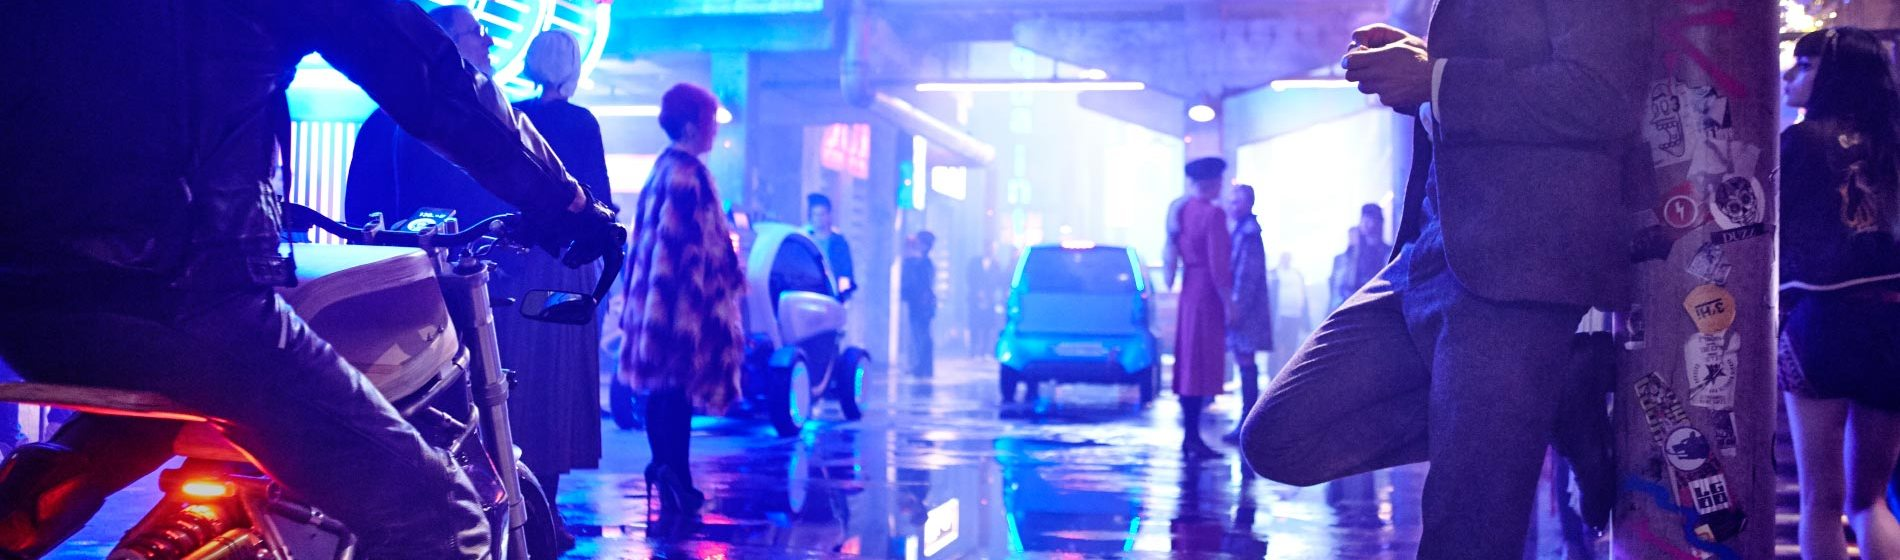 Duncan Jones Can Rebound From 'Mute' By Finding Another 'Source ...